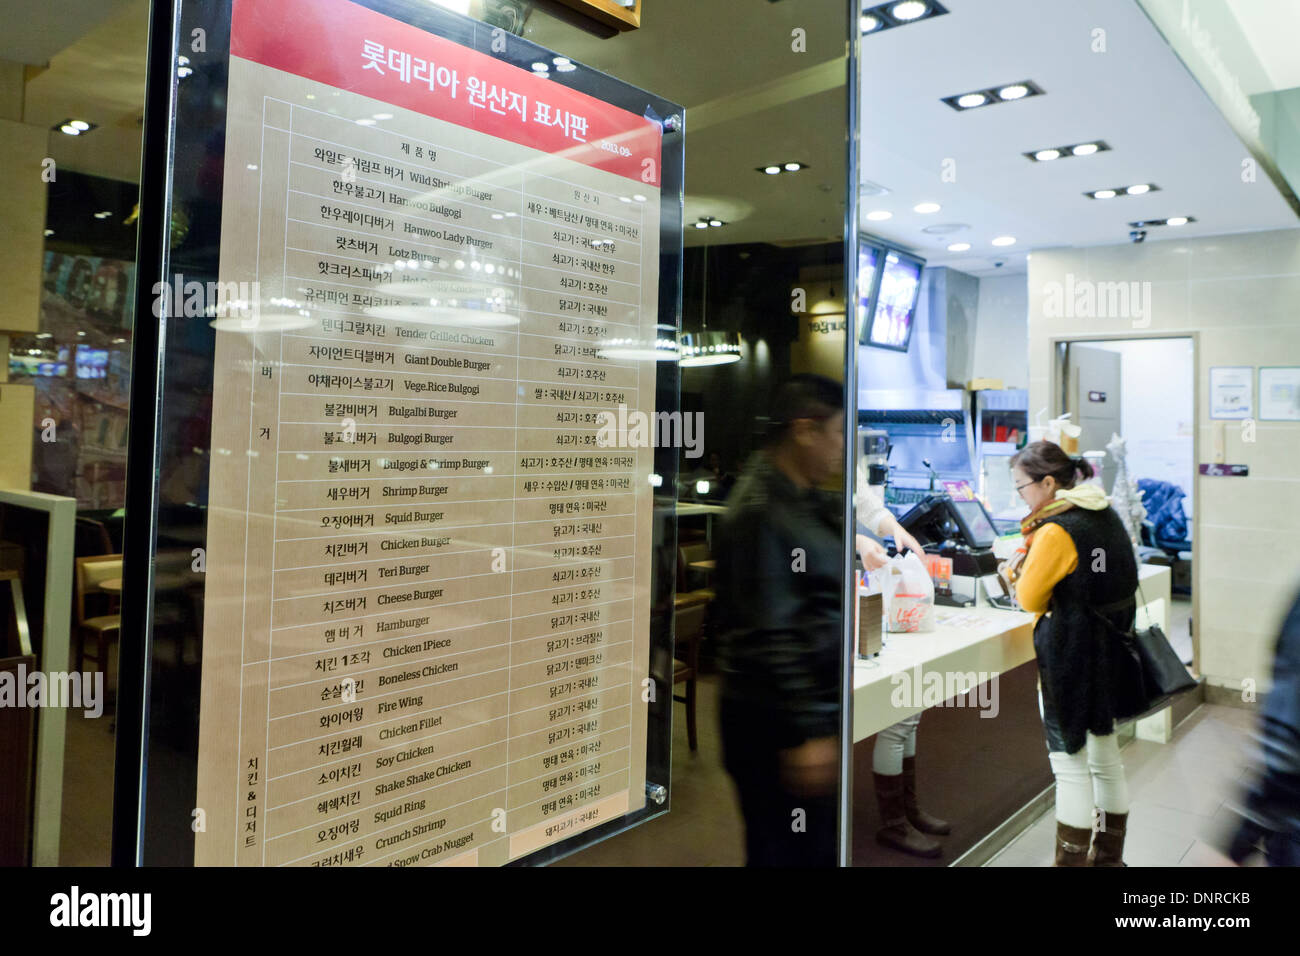 Lotteria fast food restaurant ingredient origin list - Seoul, South Korea - Stock Image